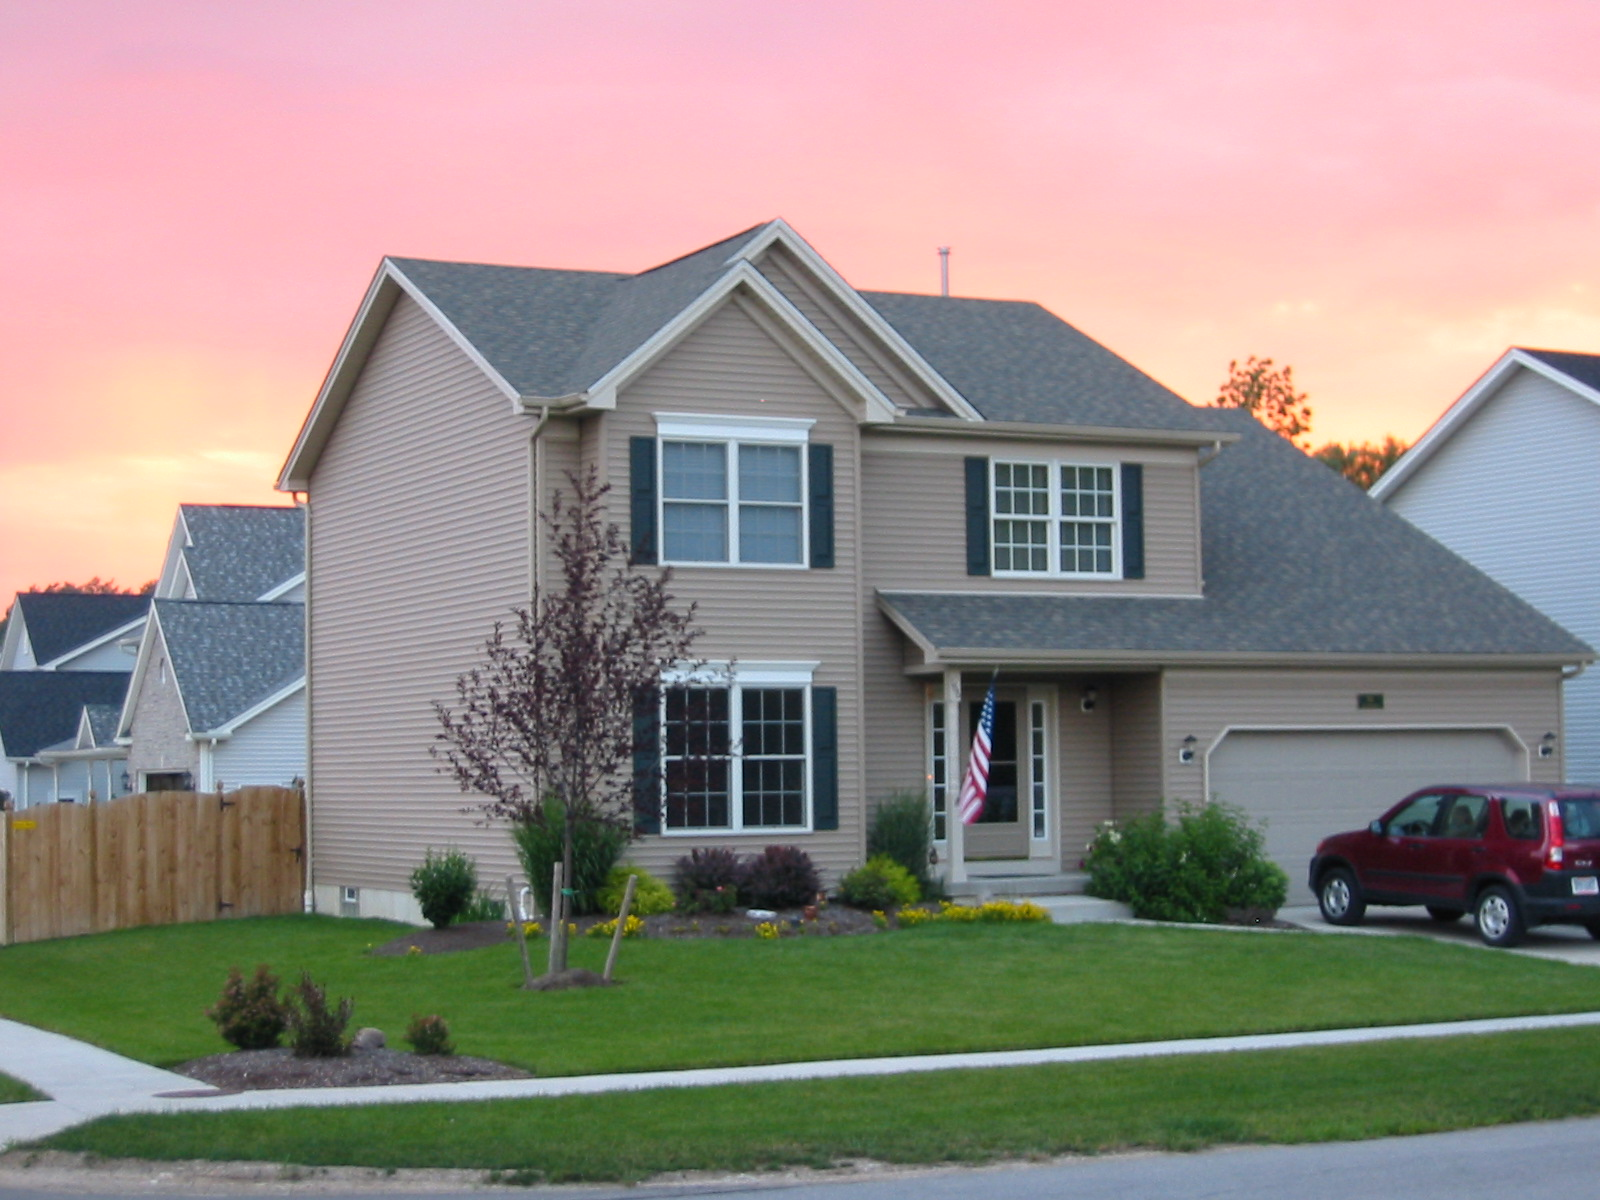 first time buyer, executive sellers Realty